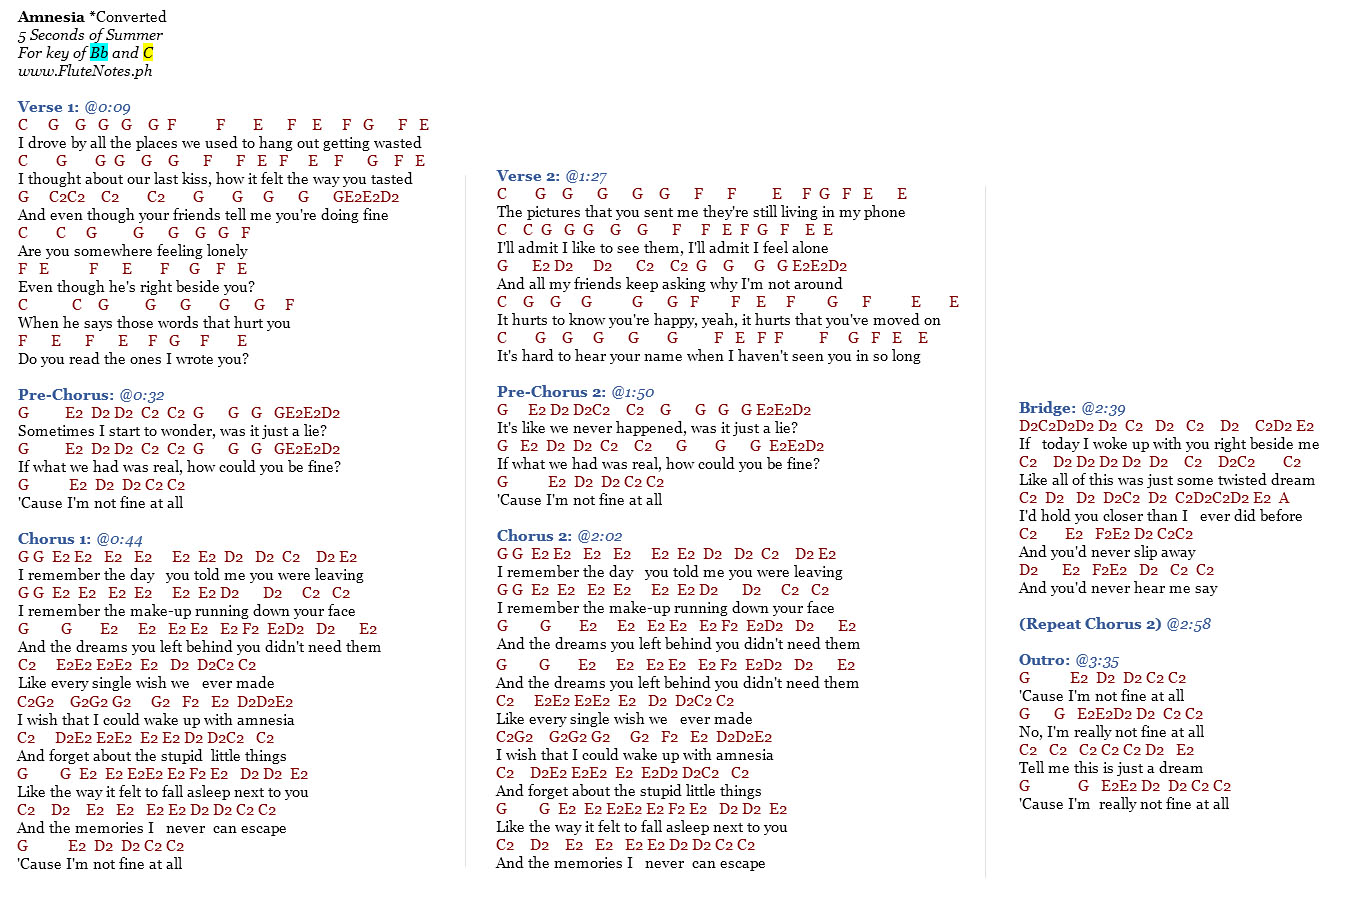 Torete Lyrics And Chords Philippin News Collections